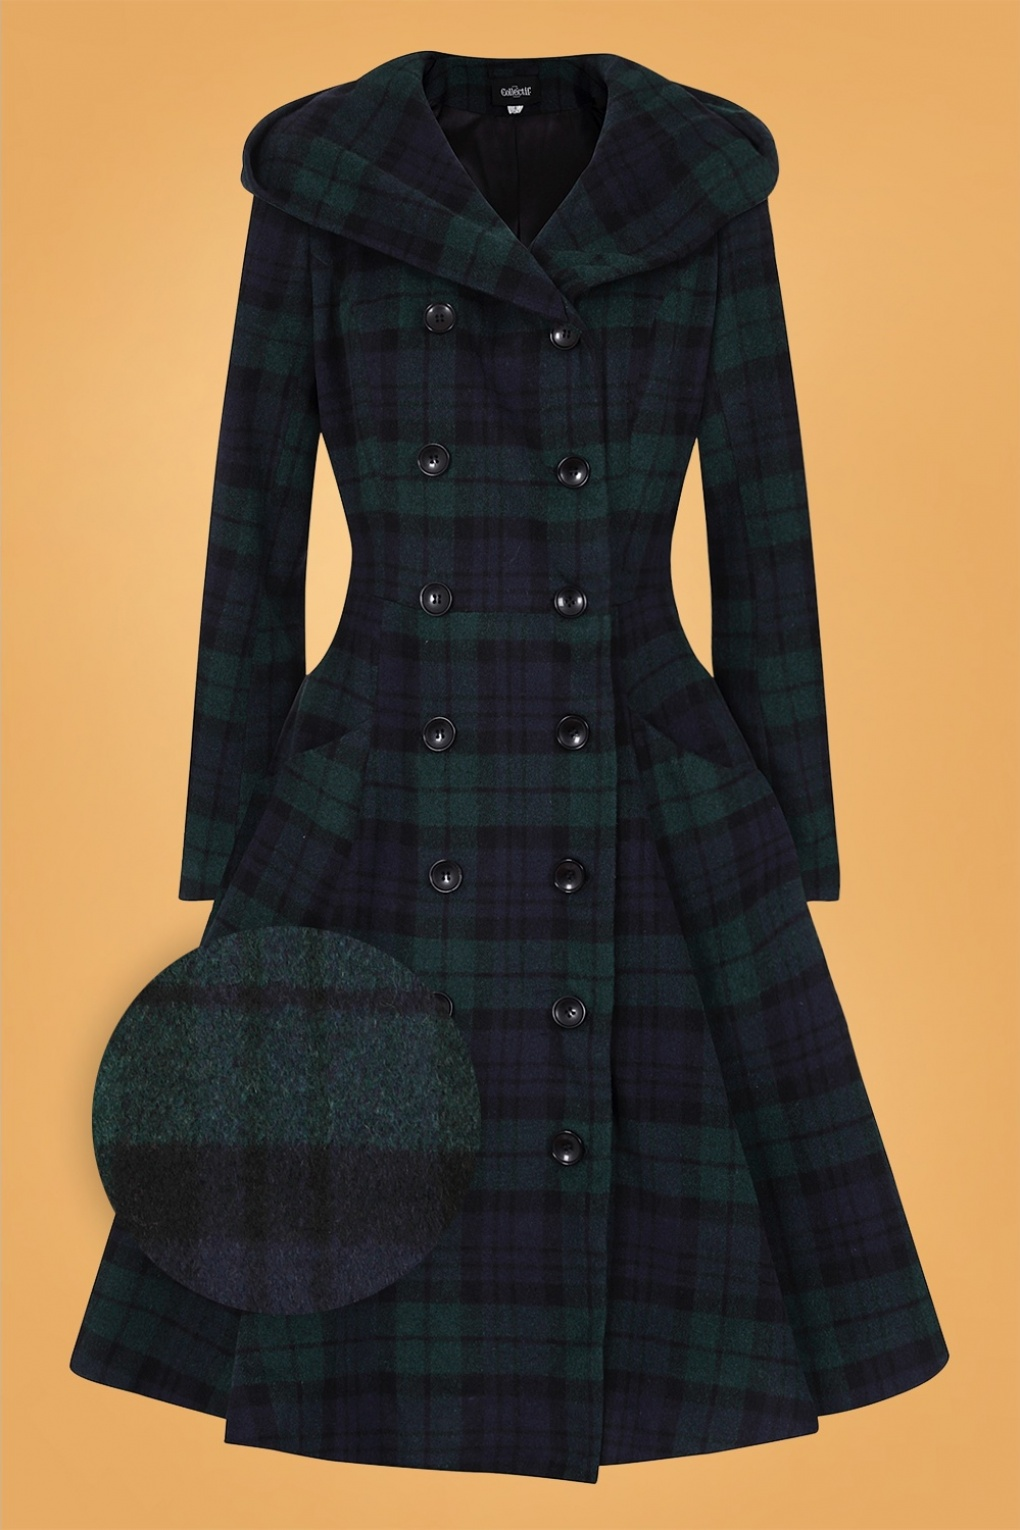 Vintage Coats & Jackets | Retro Coats and Jackets 50s Heather Blackwatch Check Swing Coat in Navy and Green £162.43 AT vintagedancer.com